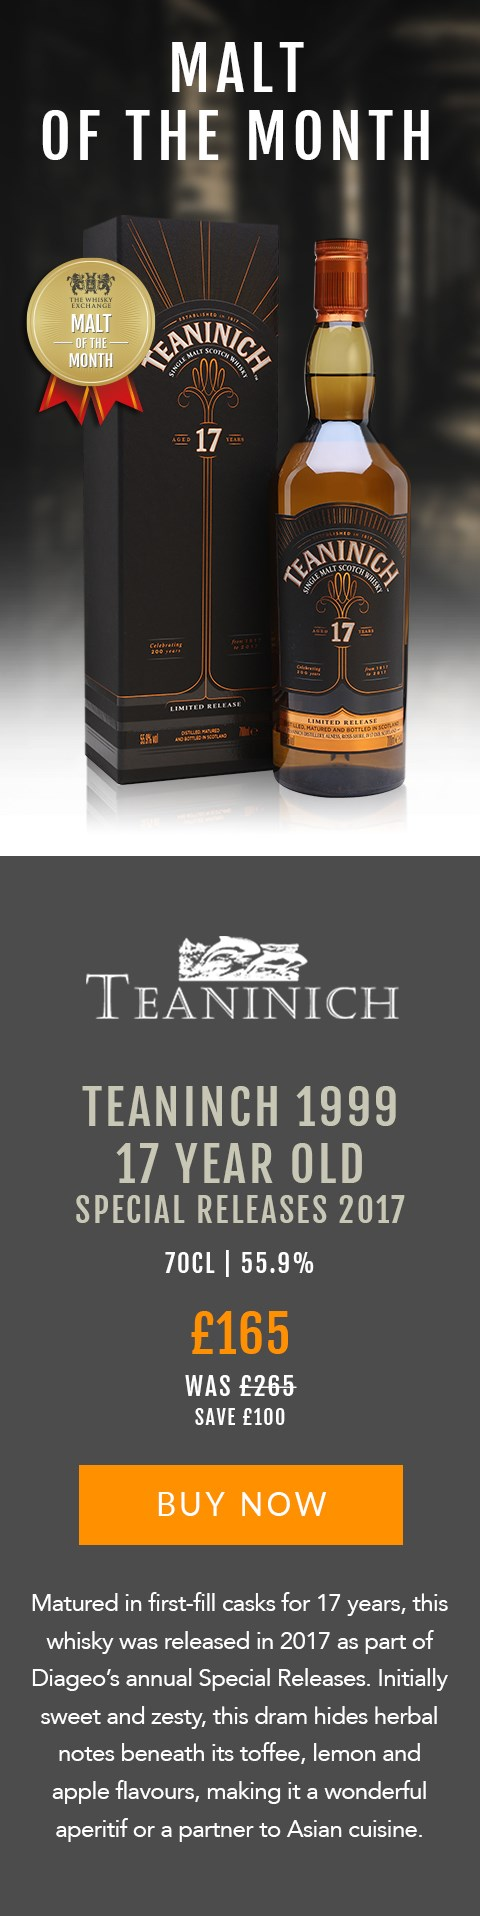 MALT OF THE MONTH  Teaninch 1993 17 Year Old Special Releases 2017  70cl | 55.9%  £165 (was £265)  Save £100  BUY NOW > https://www.thewhiskyexchange.com/feature/maltofthemonth  Matured in first-fill casks for 17 years, this whisky was released in 2017 as part of Diageo's annual Special Releases. Initially sweet and zesty, this dram hides herbal notes beneath its toffee, lemon and apple flavours, making it a wonderful aperitif or a partner to Asian cuisine.